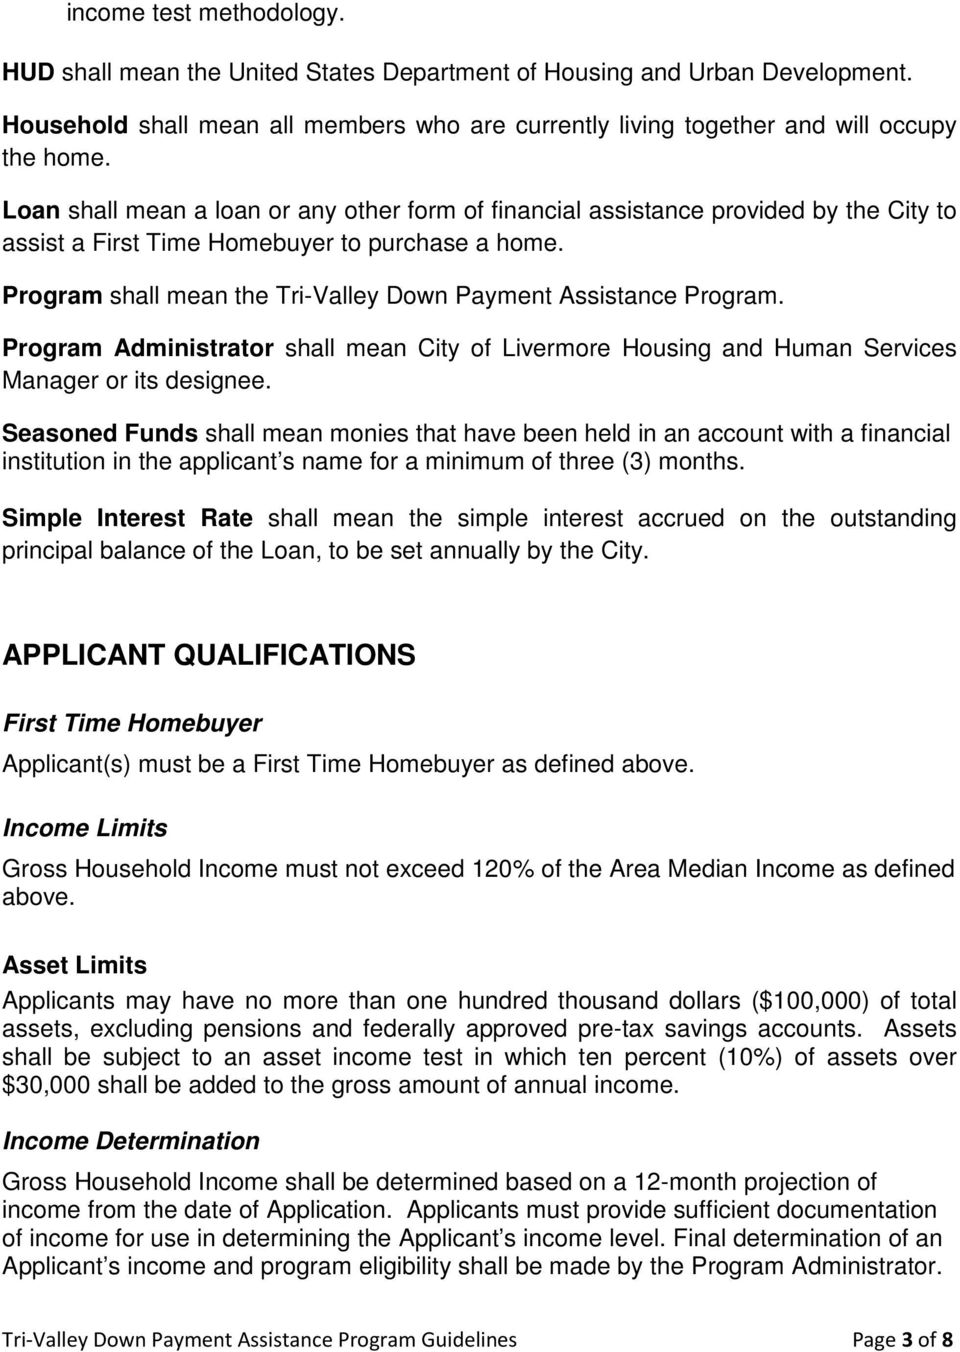 Program shall mean the Tri-Valley Down Payment Assistance Program. Program Administrator shall mean City of Livermore Housing and Human Services Manager or its designee.